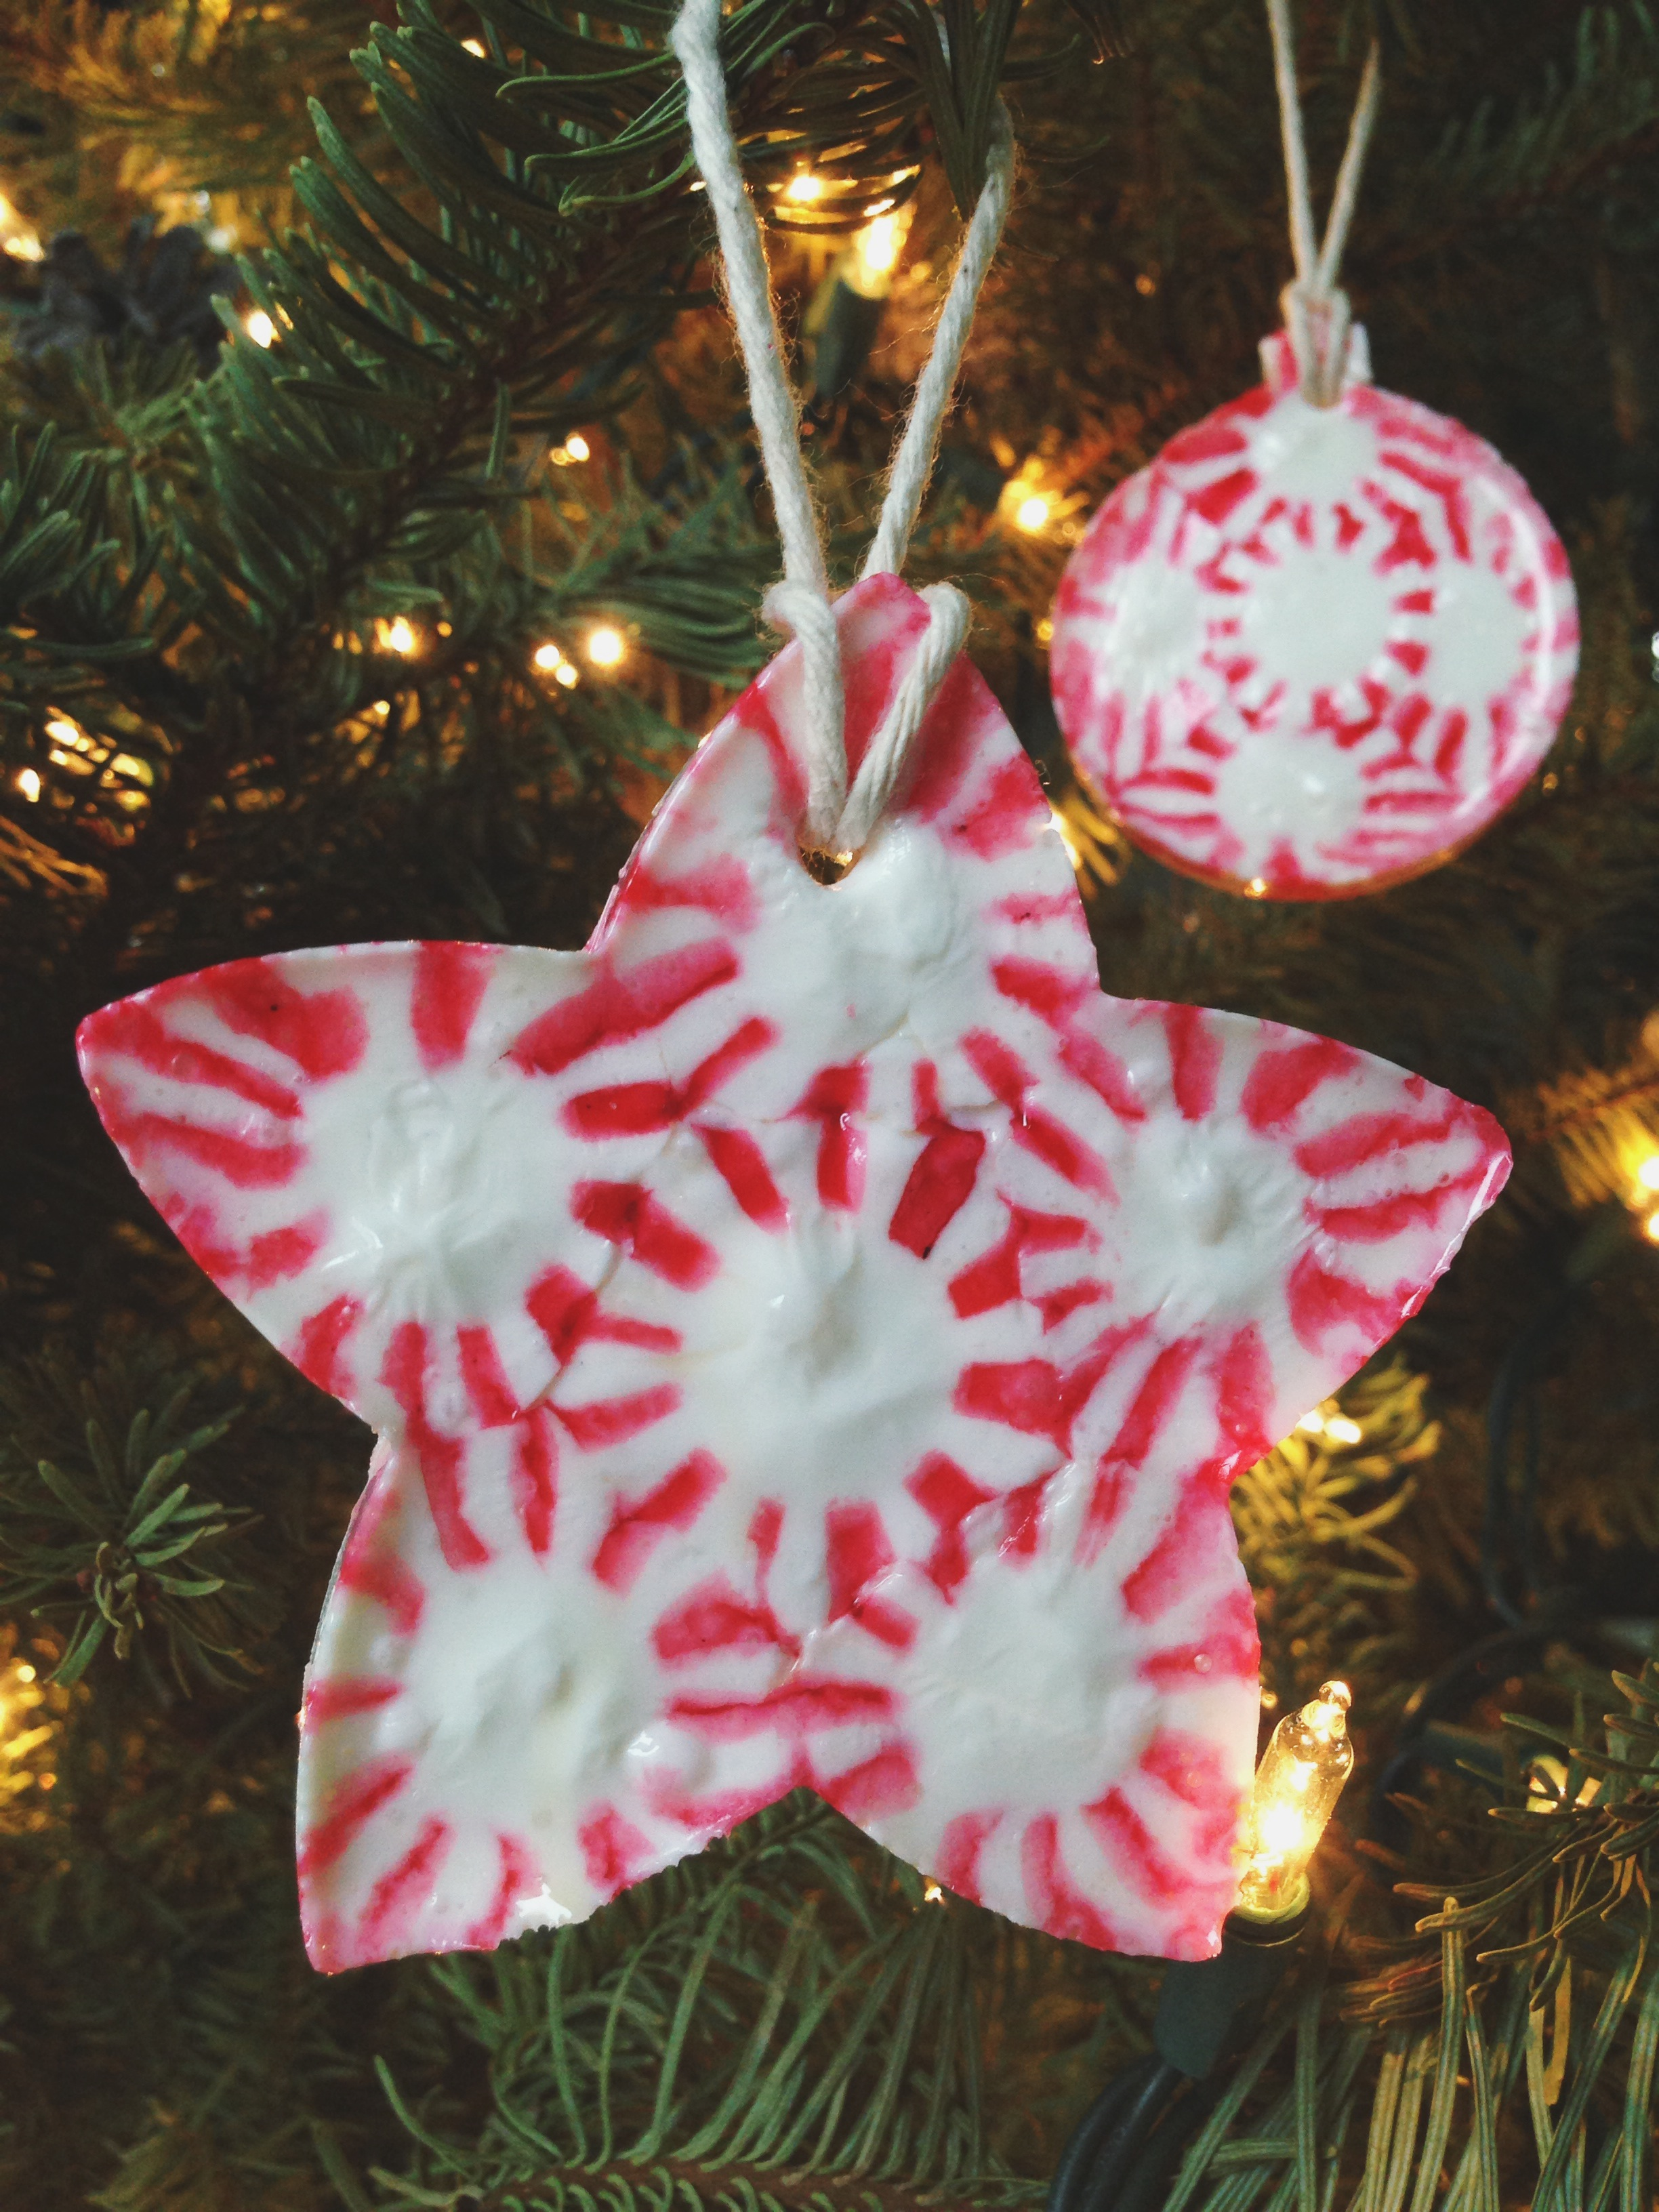 Handmade glass christmas ornaments - Peppermint Candy Ornament 25 Beautiful Handmade Ornaments